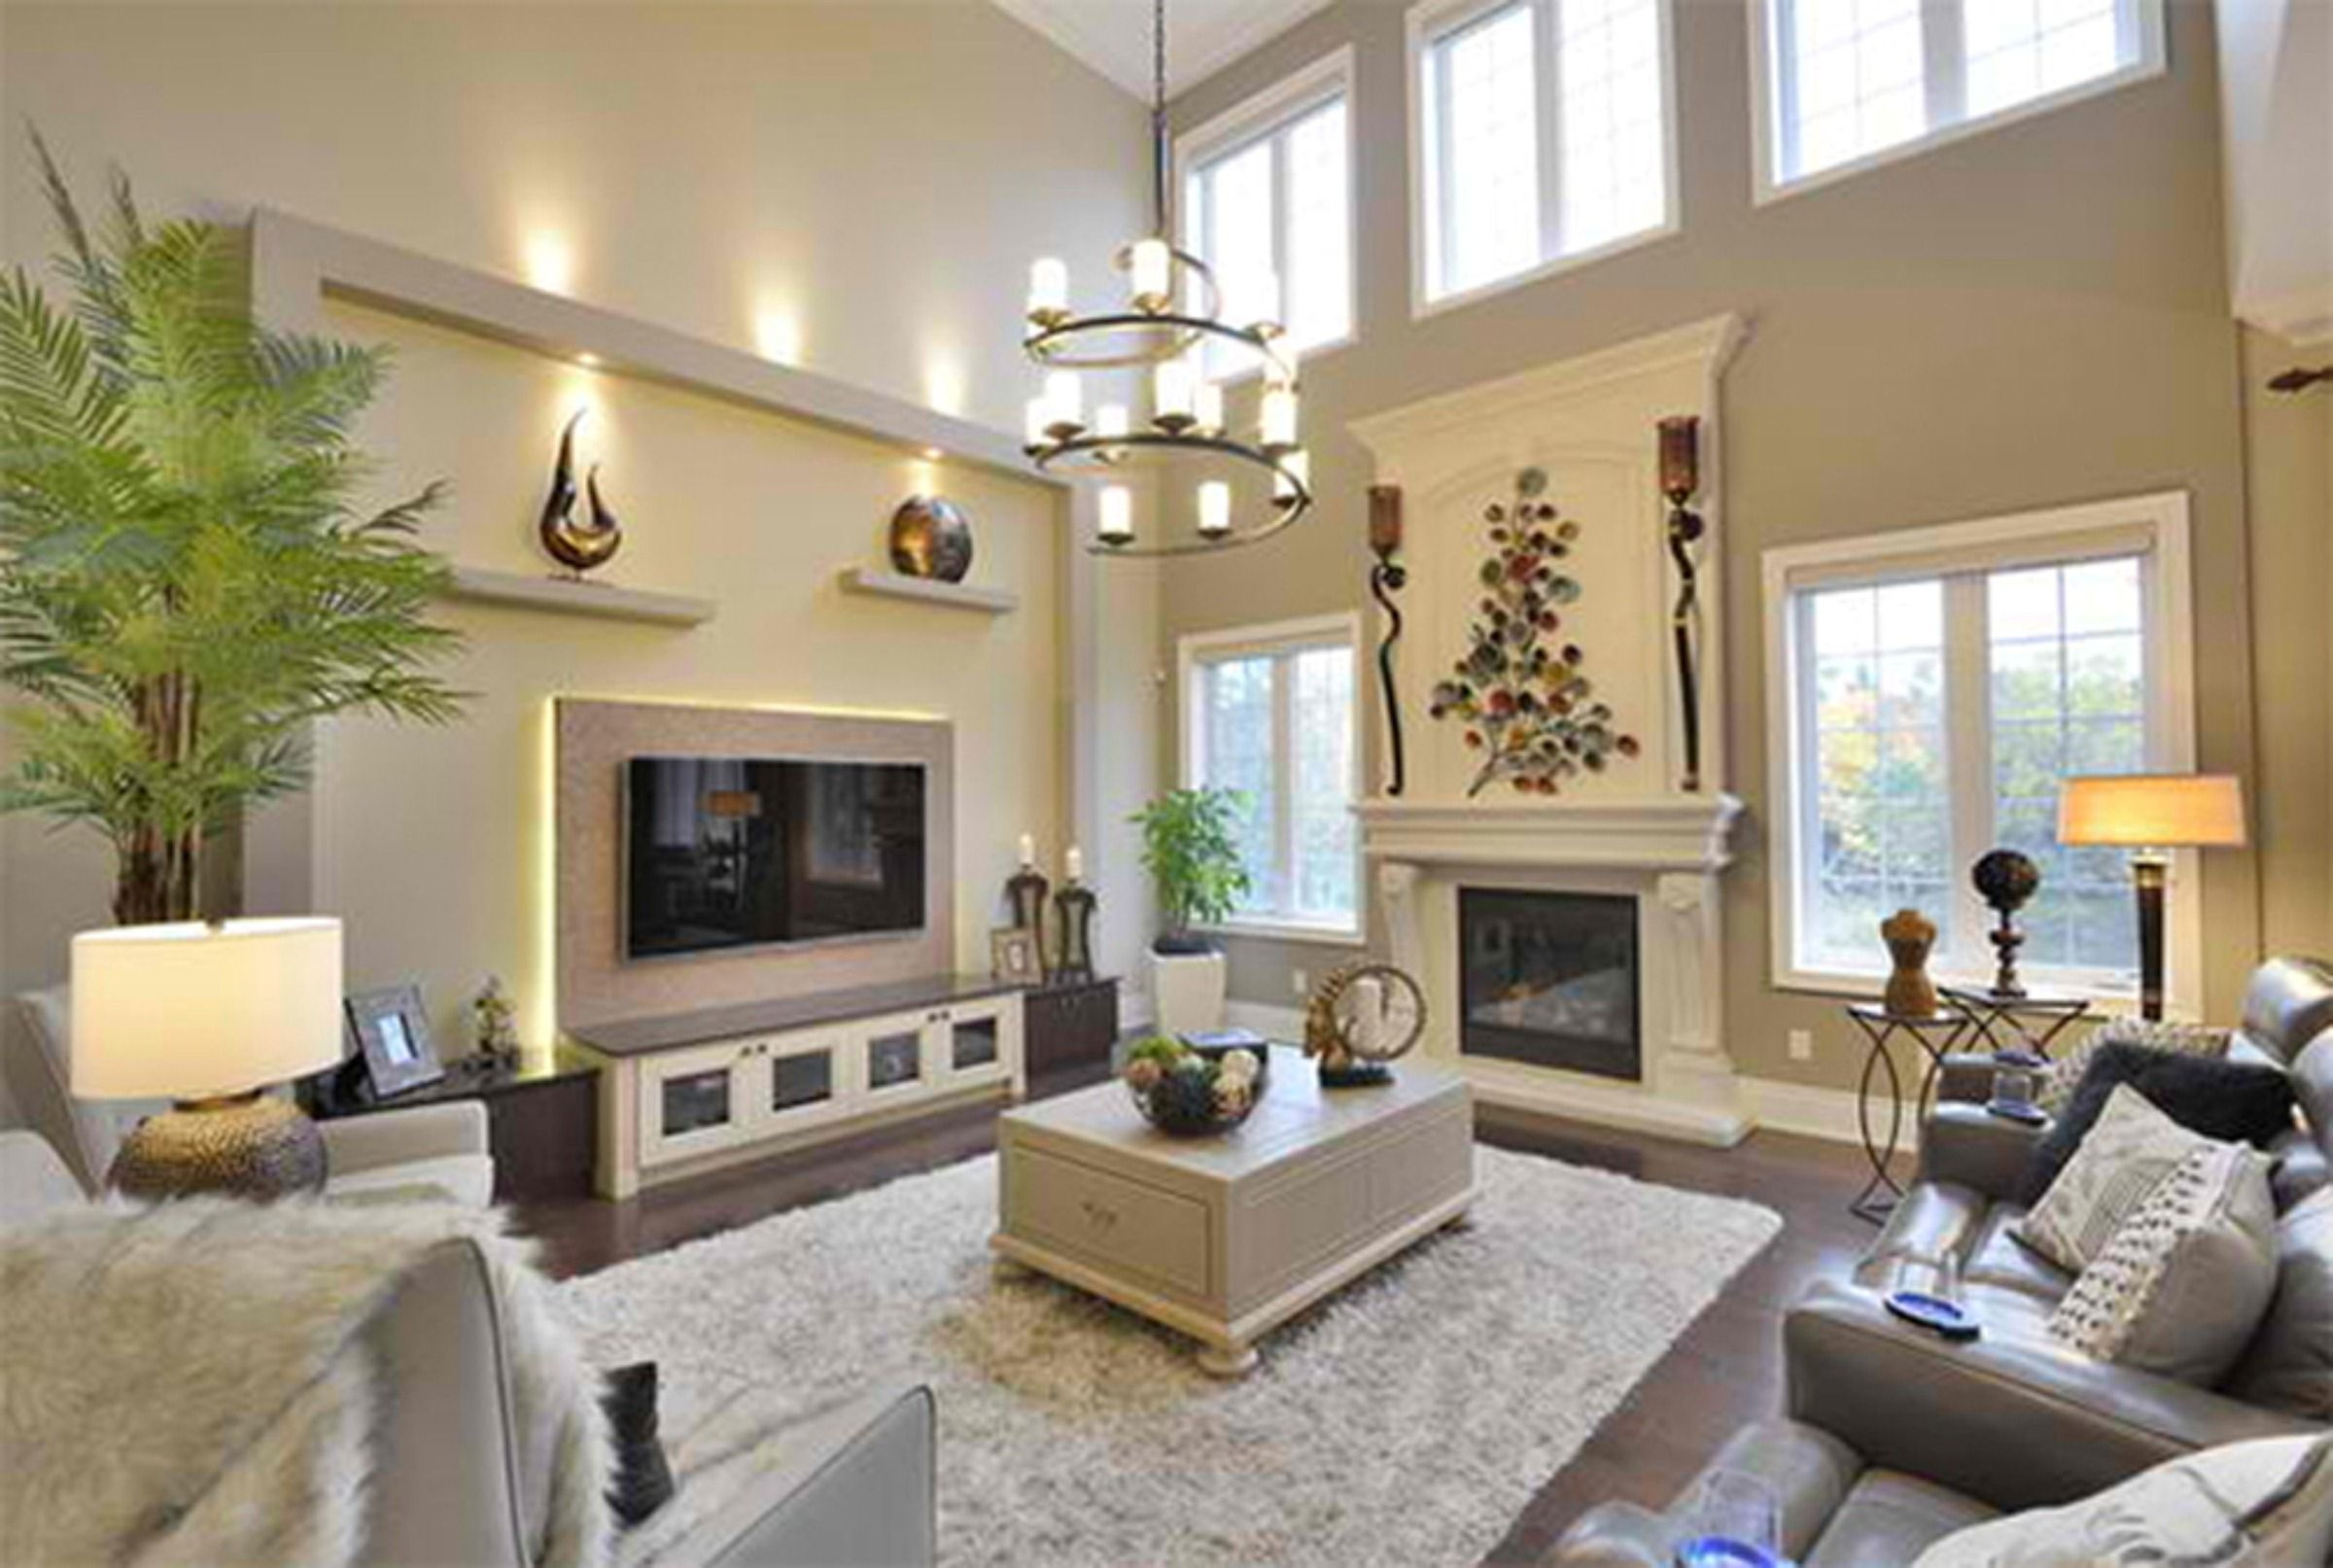 How To Decorate A Long Narrow Living Room With A Fireplace